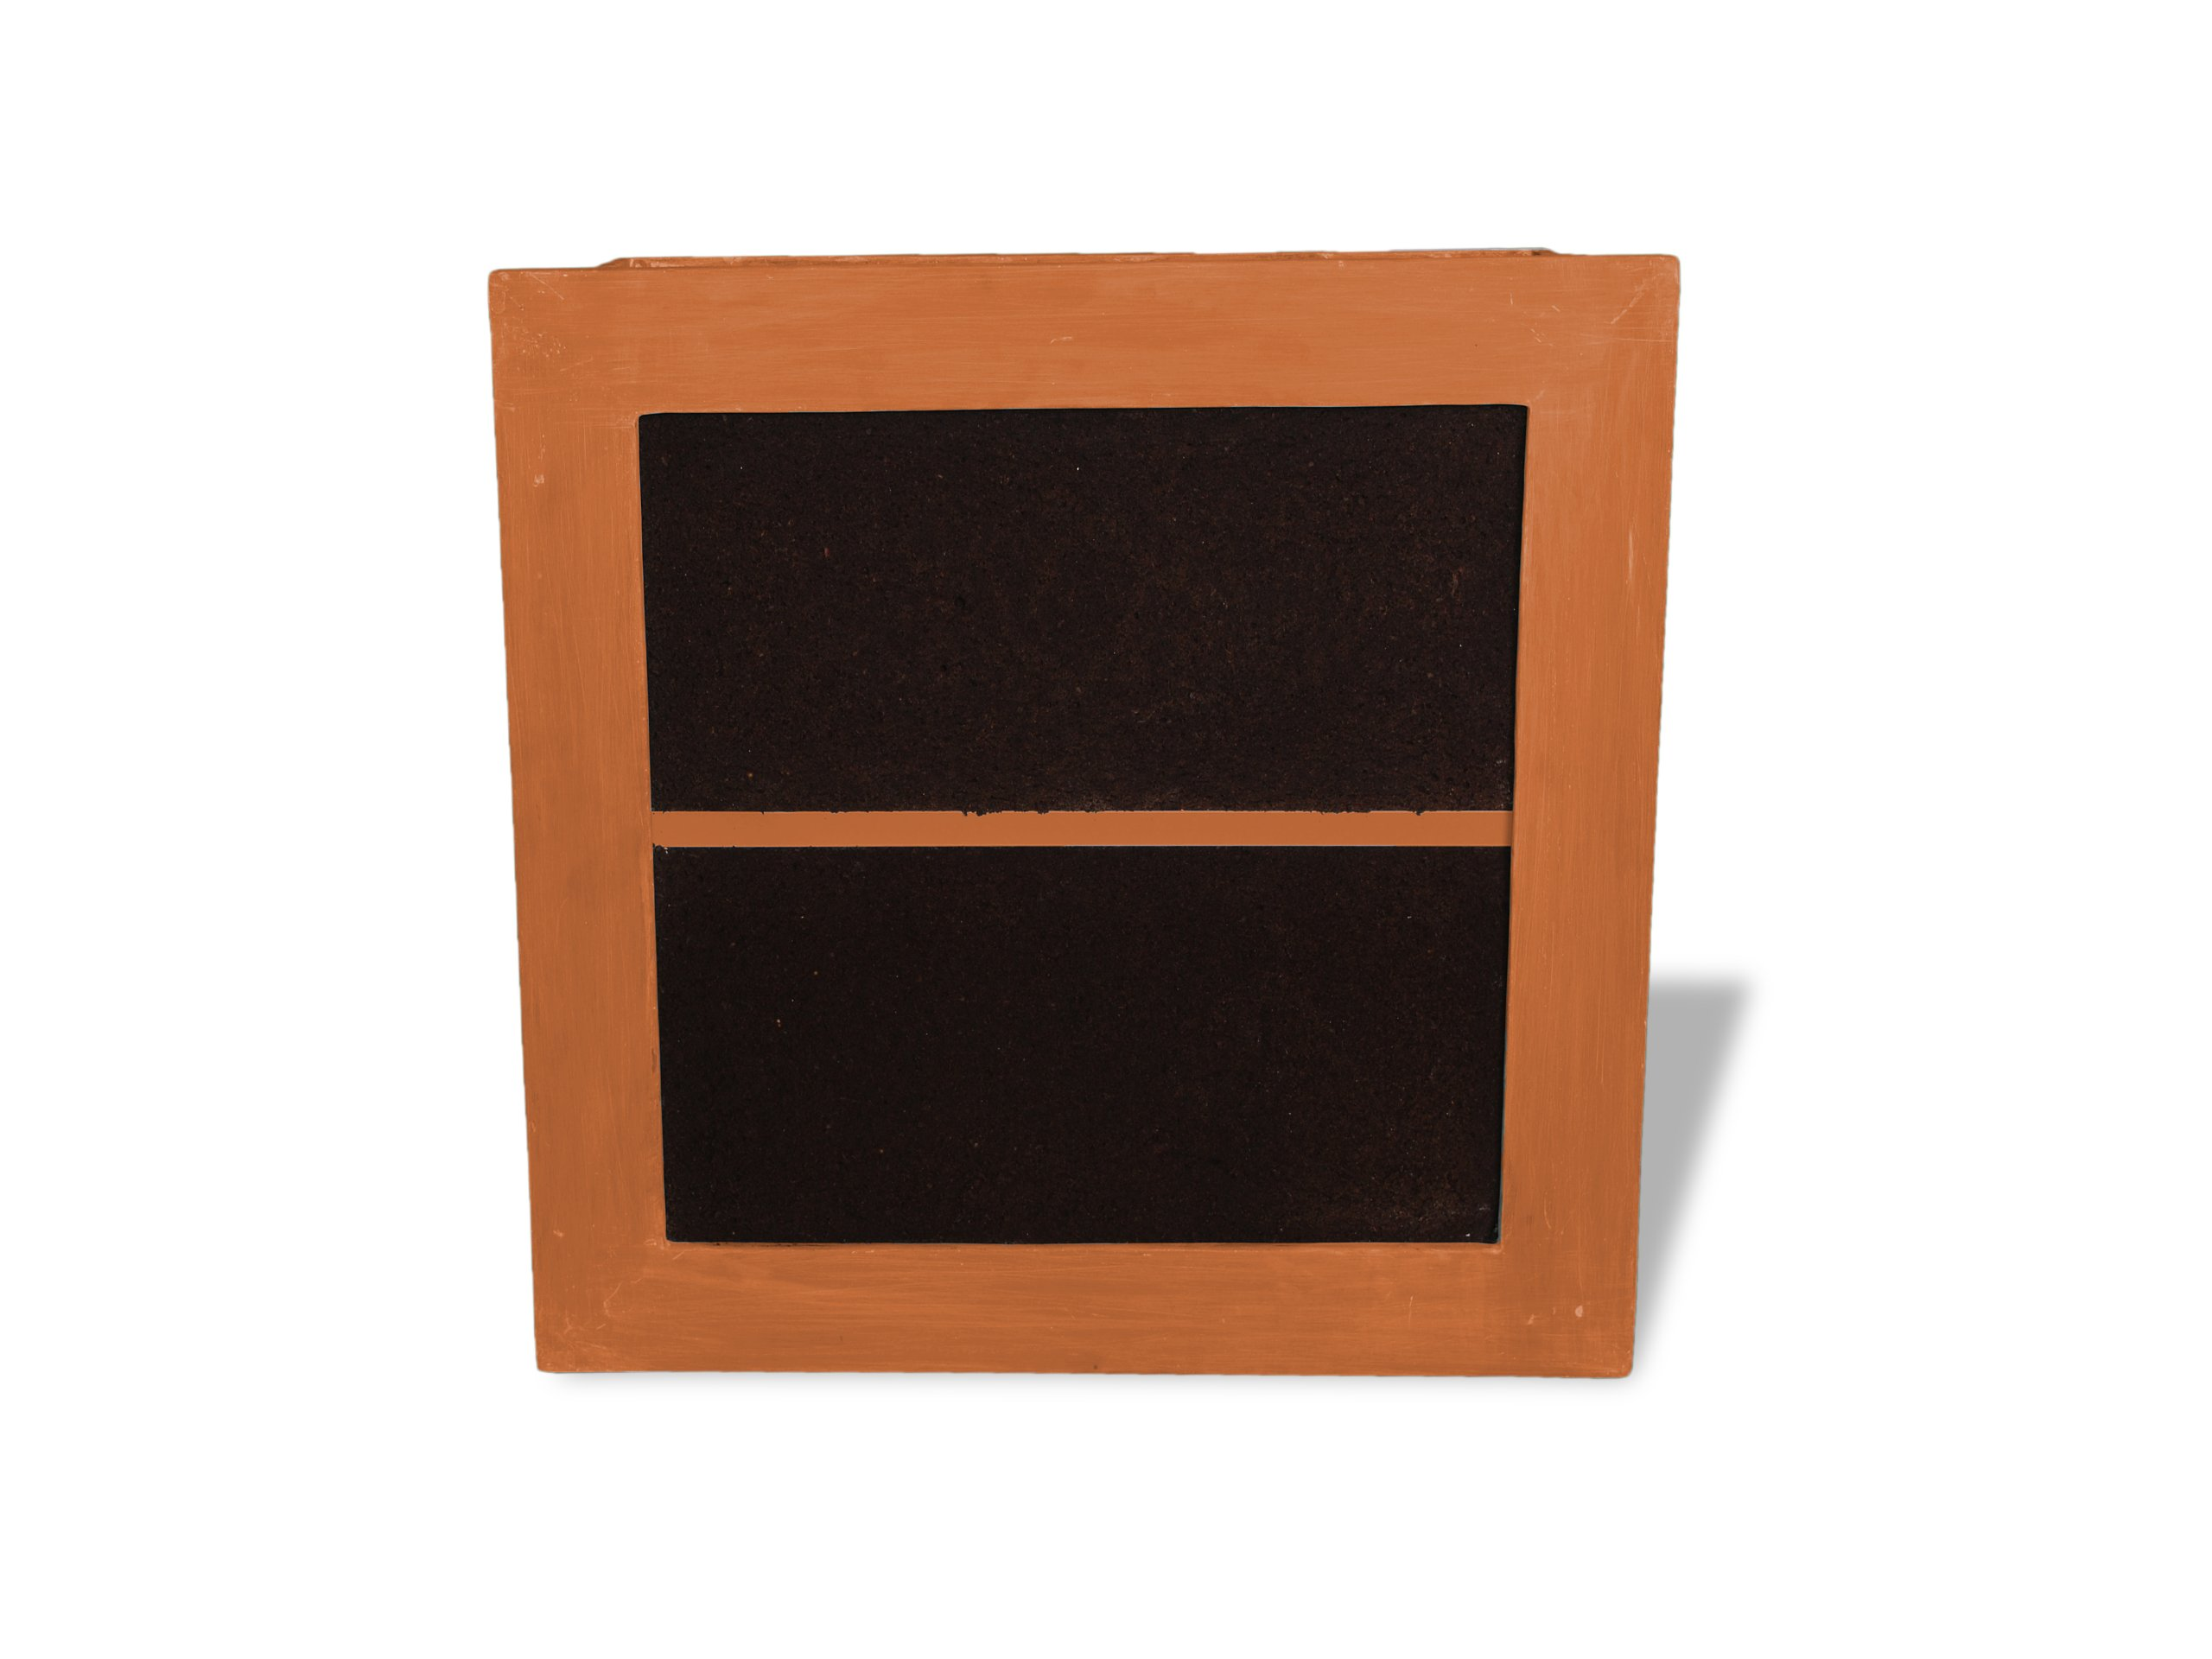 Amedeo Design 2100-01T Framed Living Indoor Wall Planter, 29.5 by 29.5 by 4-Inch, Terra Cotta